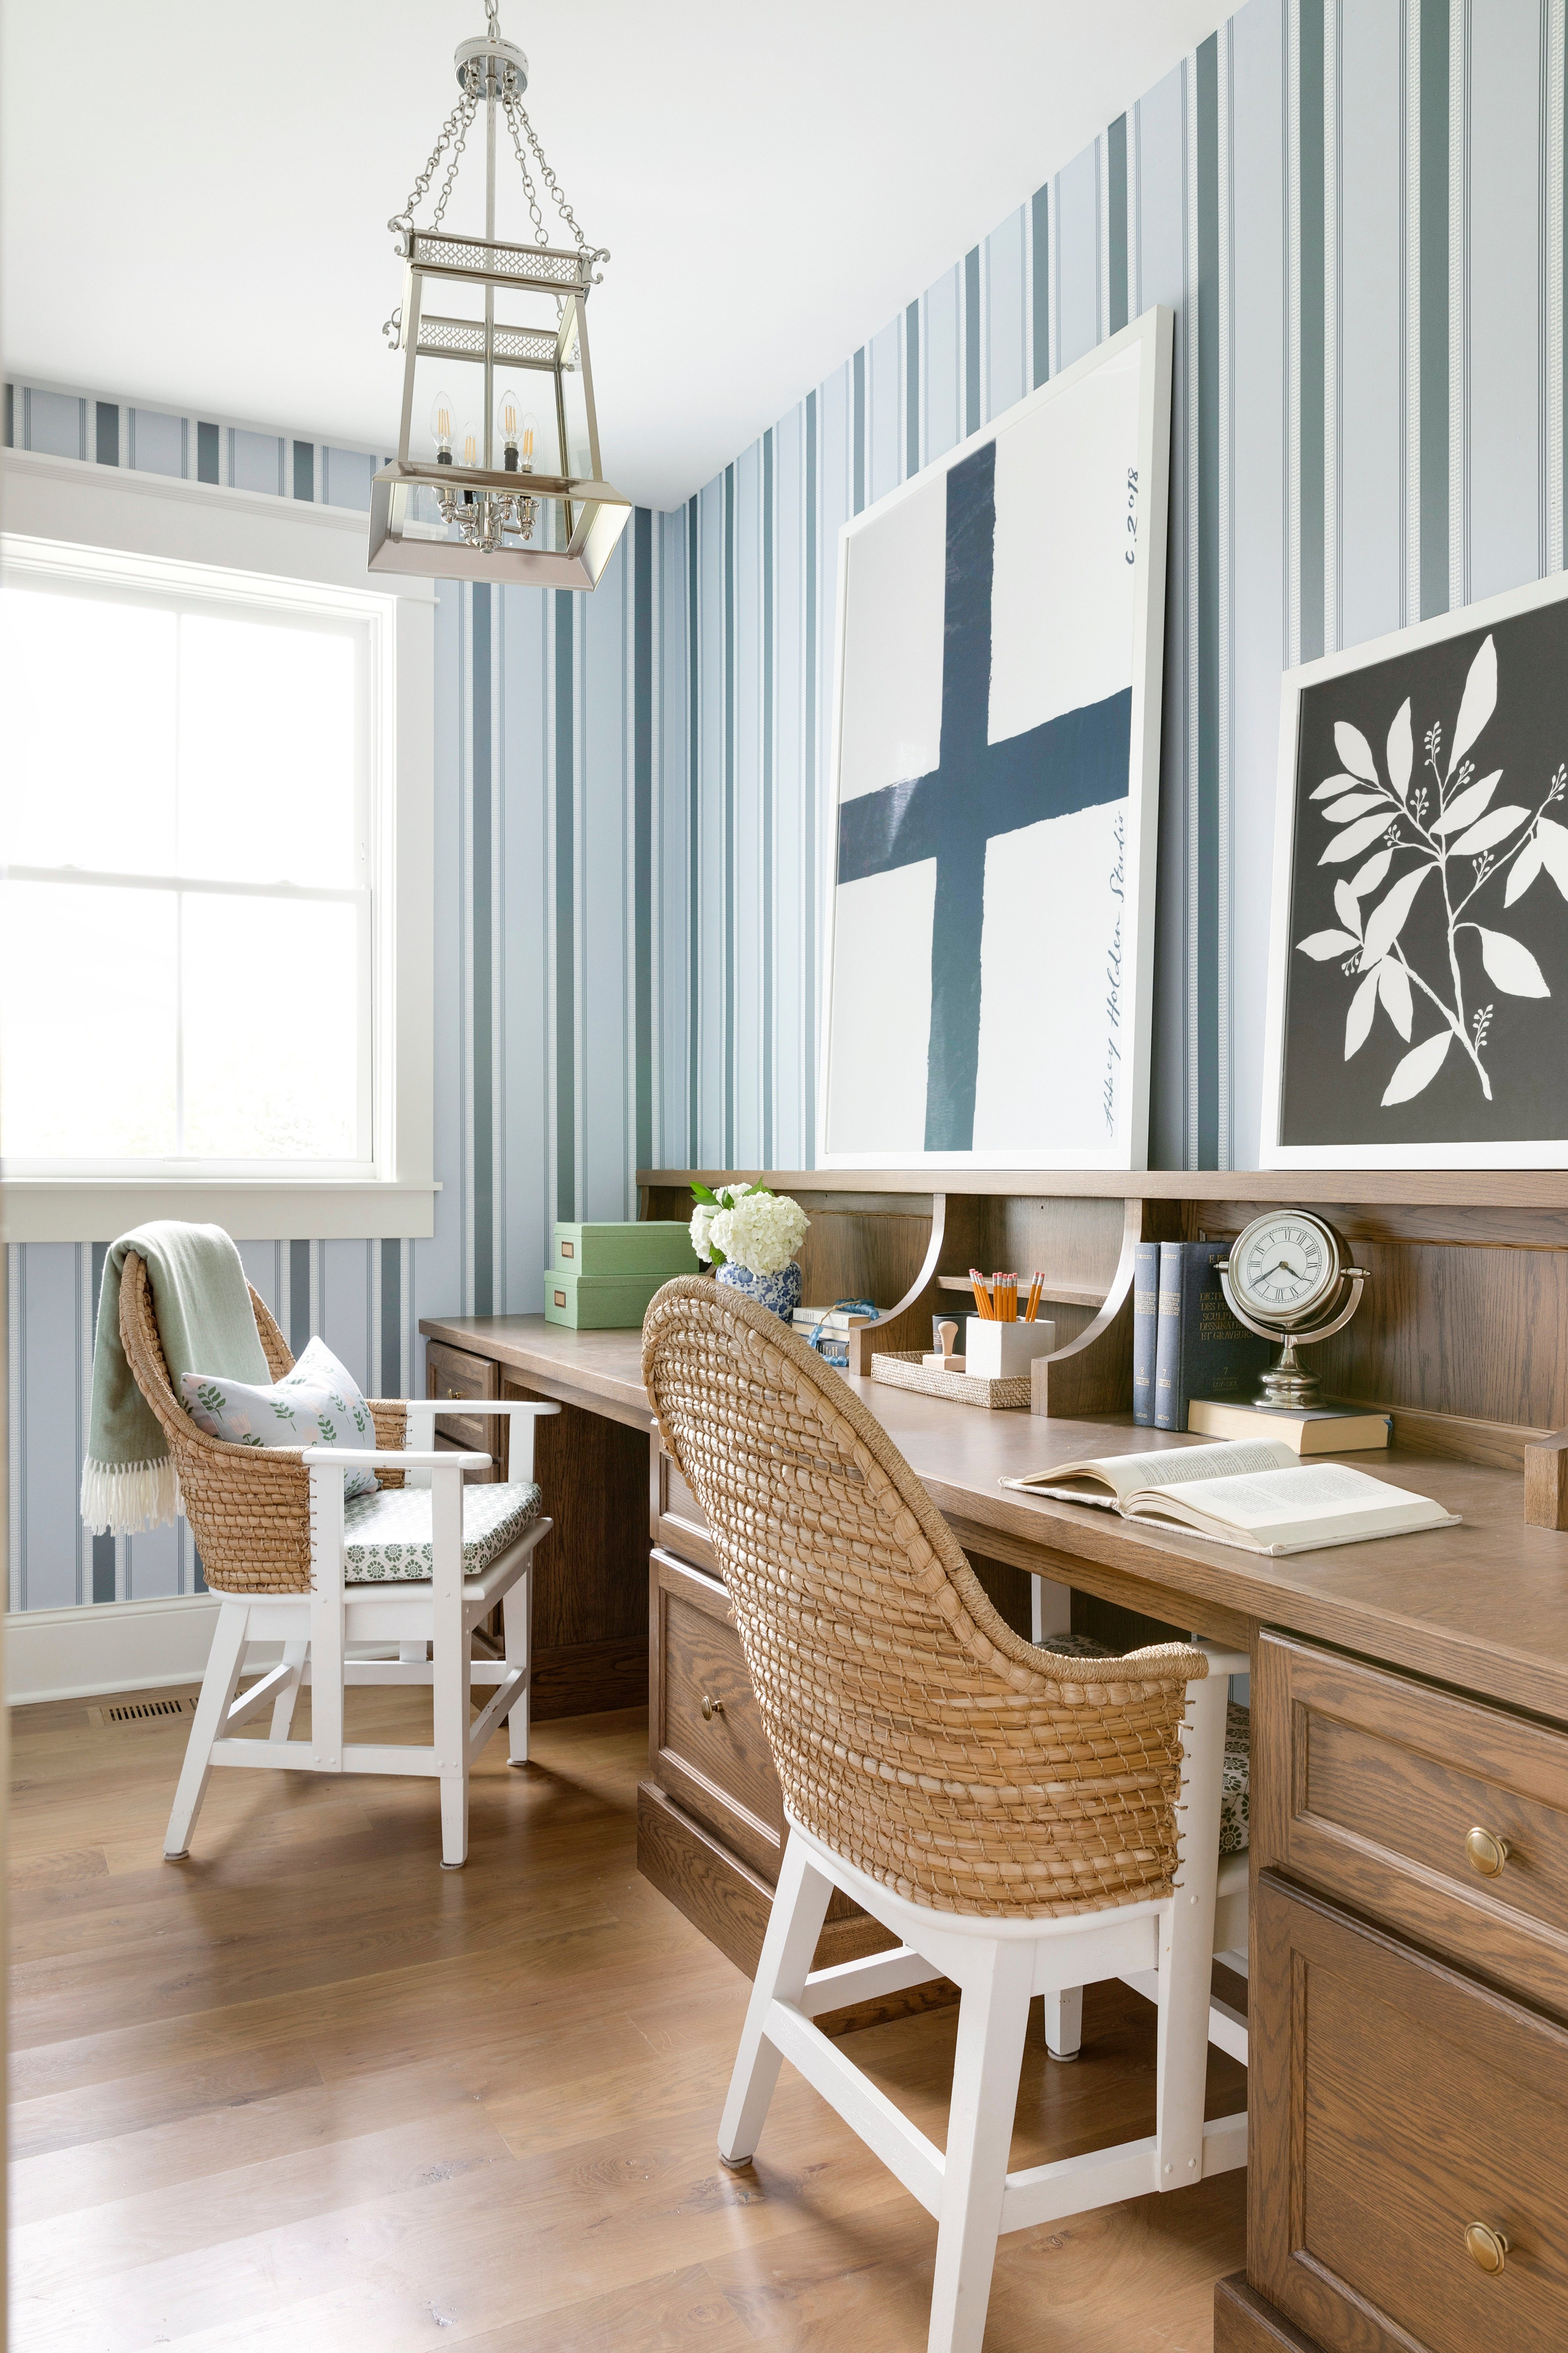 A Classic Farmhouse Meets Chic Furnishings Round back